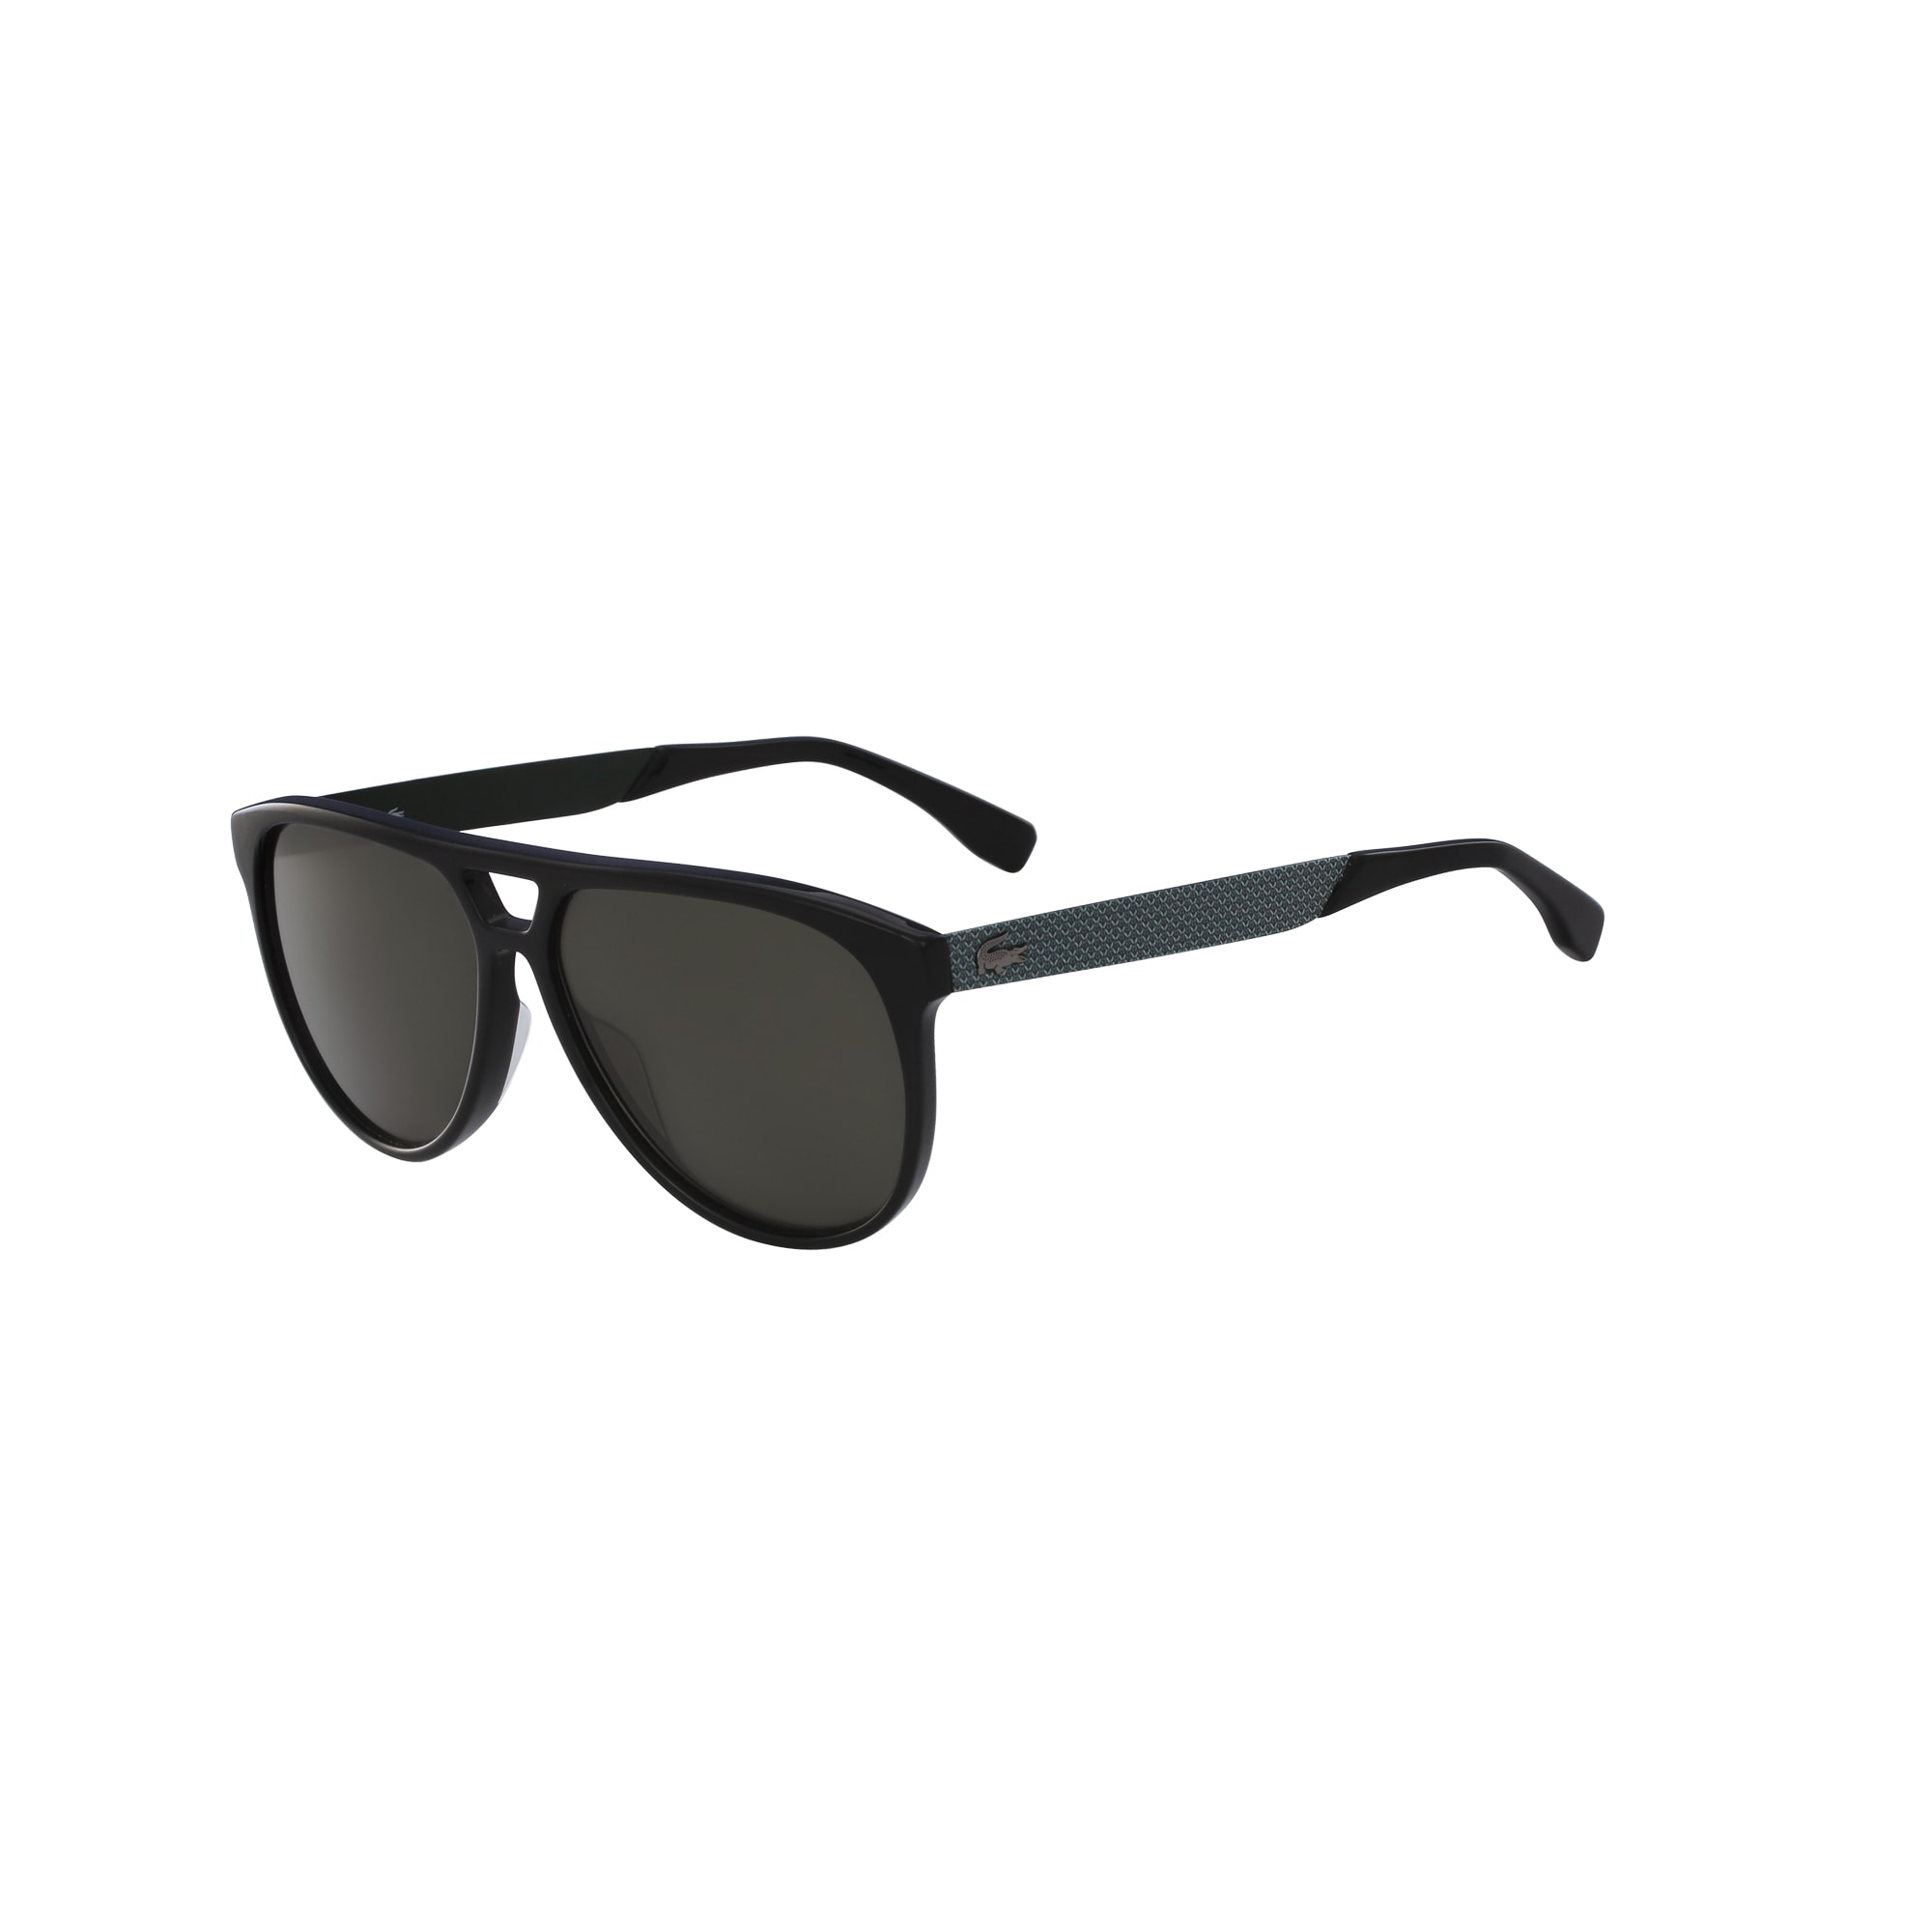 Men's Plastic Pilot Shape Sunglasses